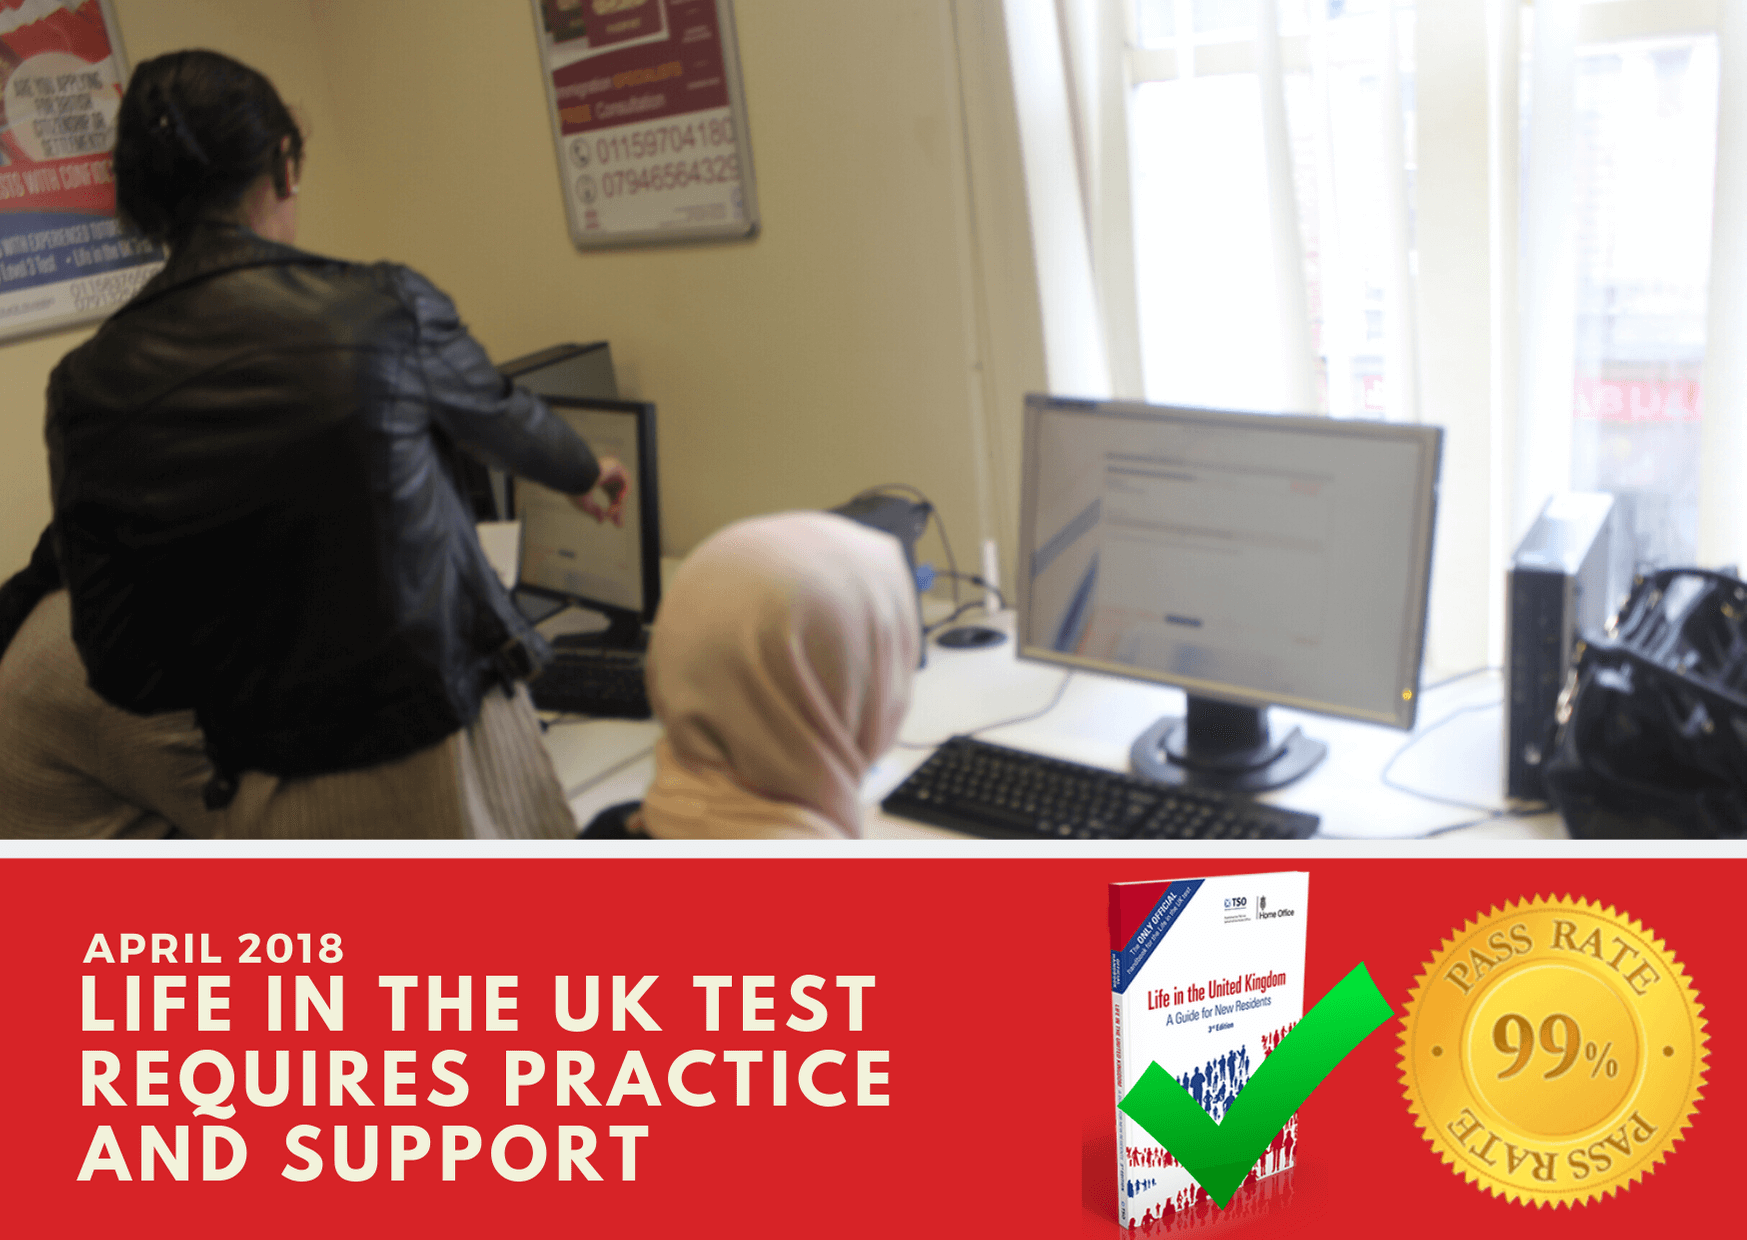 Our life in the uk test online can be practiced from home